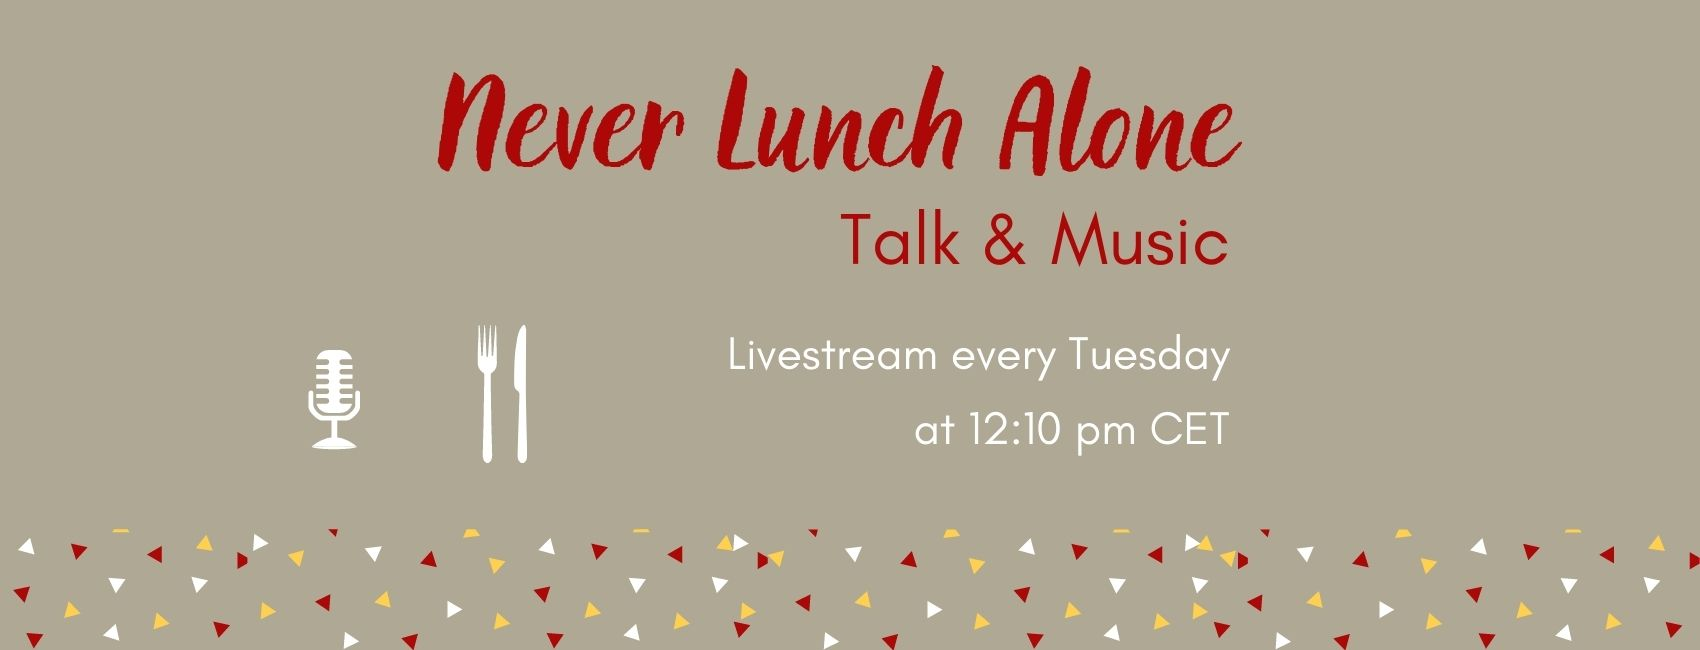 Never_Lunch_Alone_MUSICSPOTS